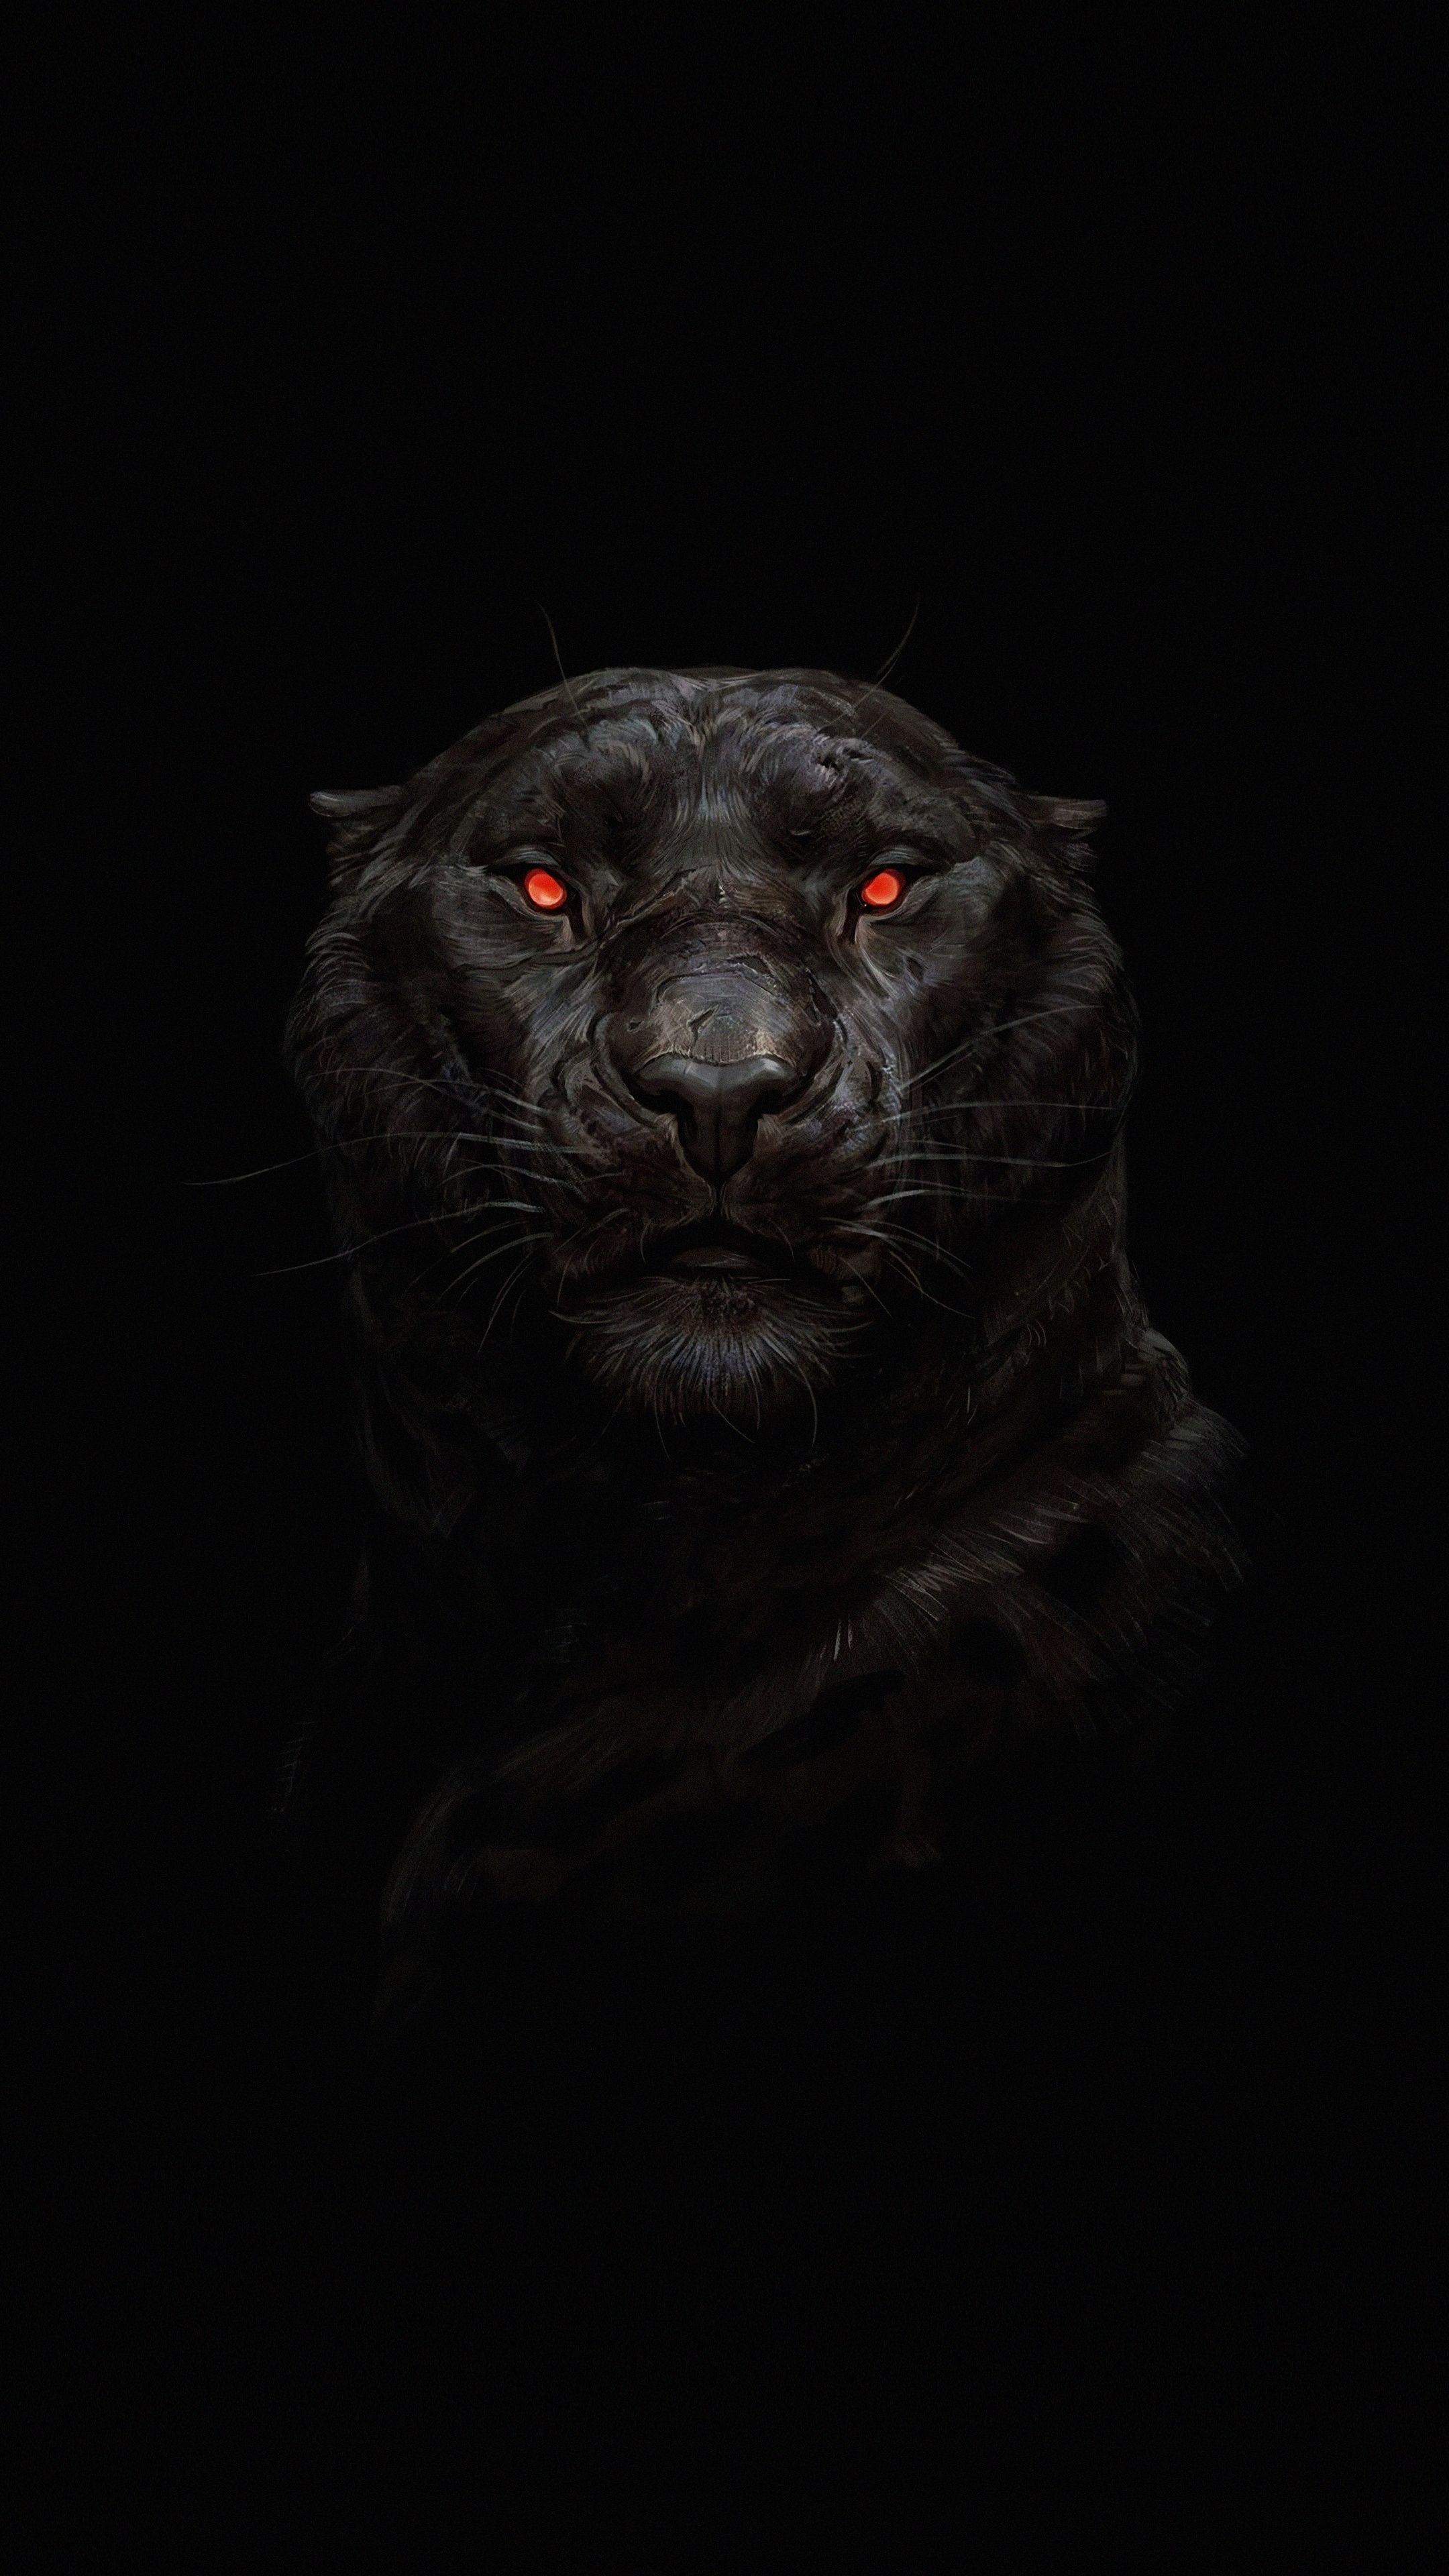 2160x3840 Tiger Glowing Red Eye Minimal Dark Wallpaper Dark